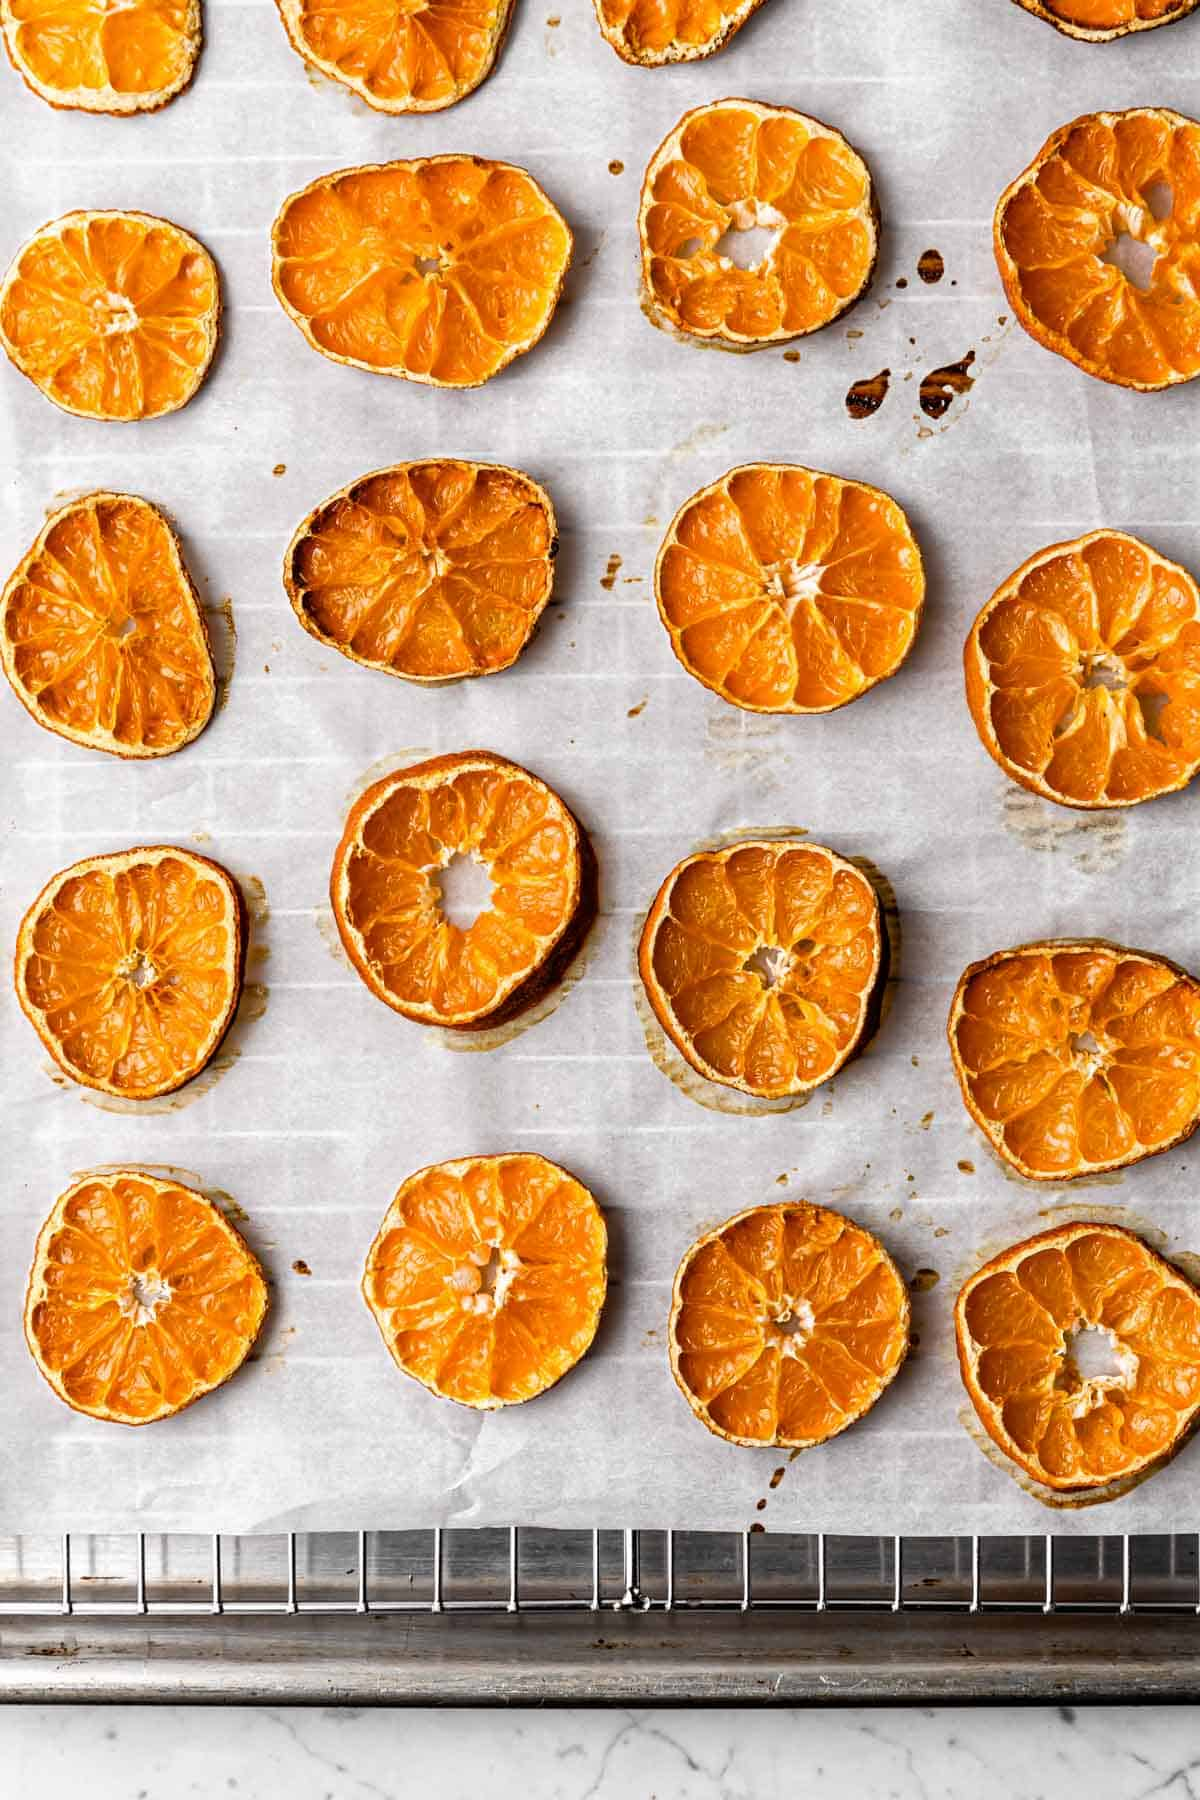 Dried satsuma slices dried in the oven